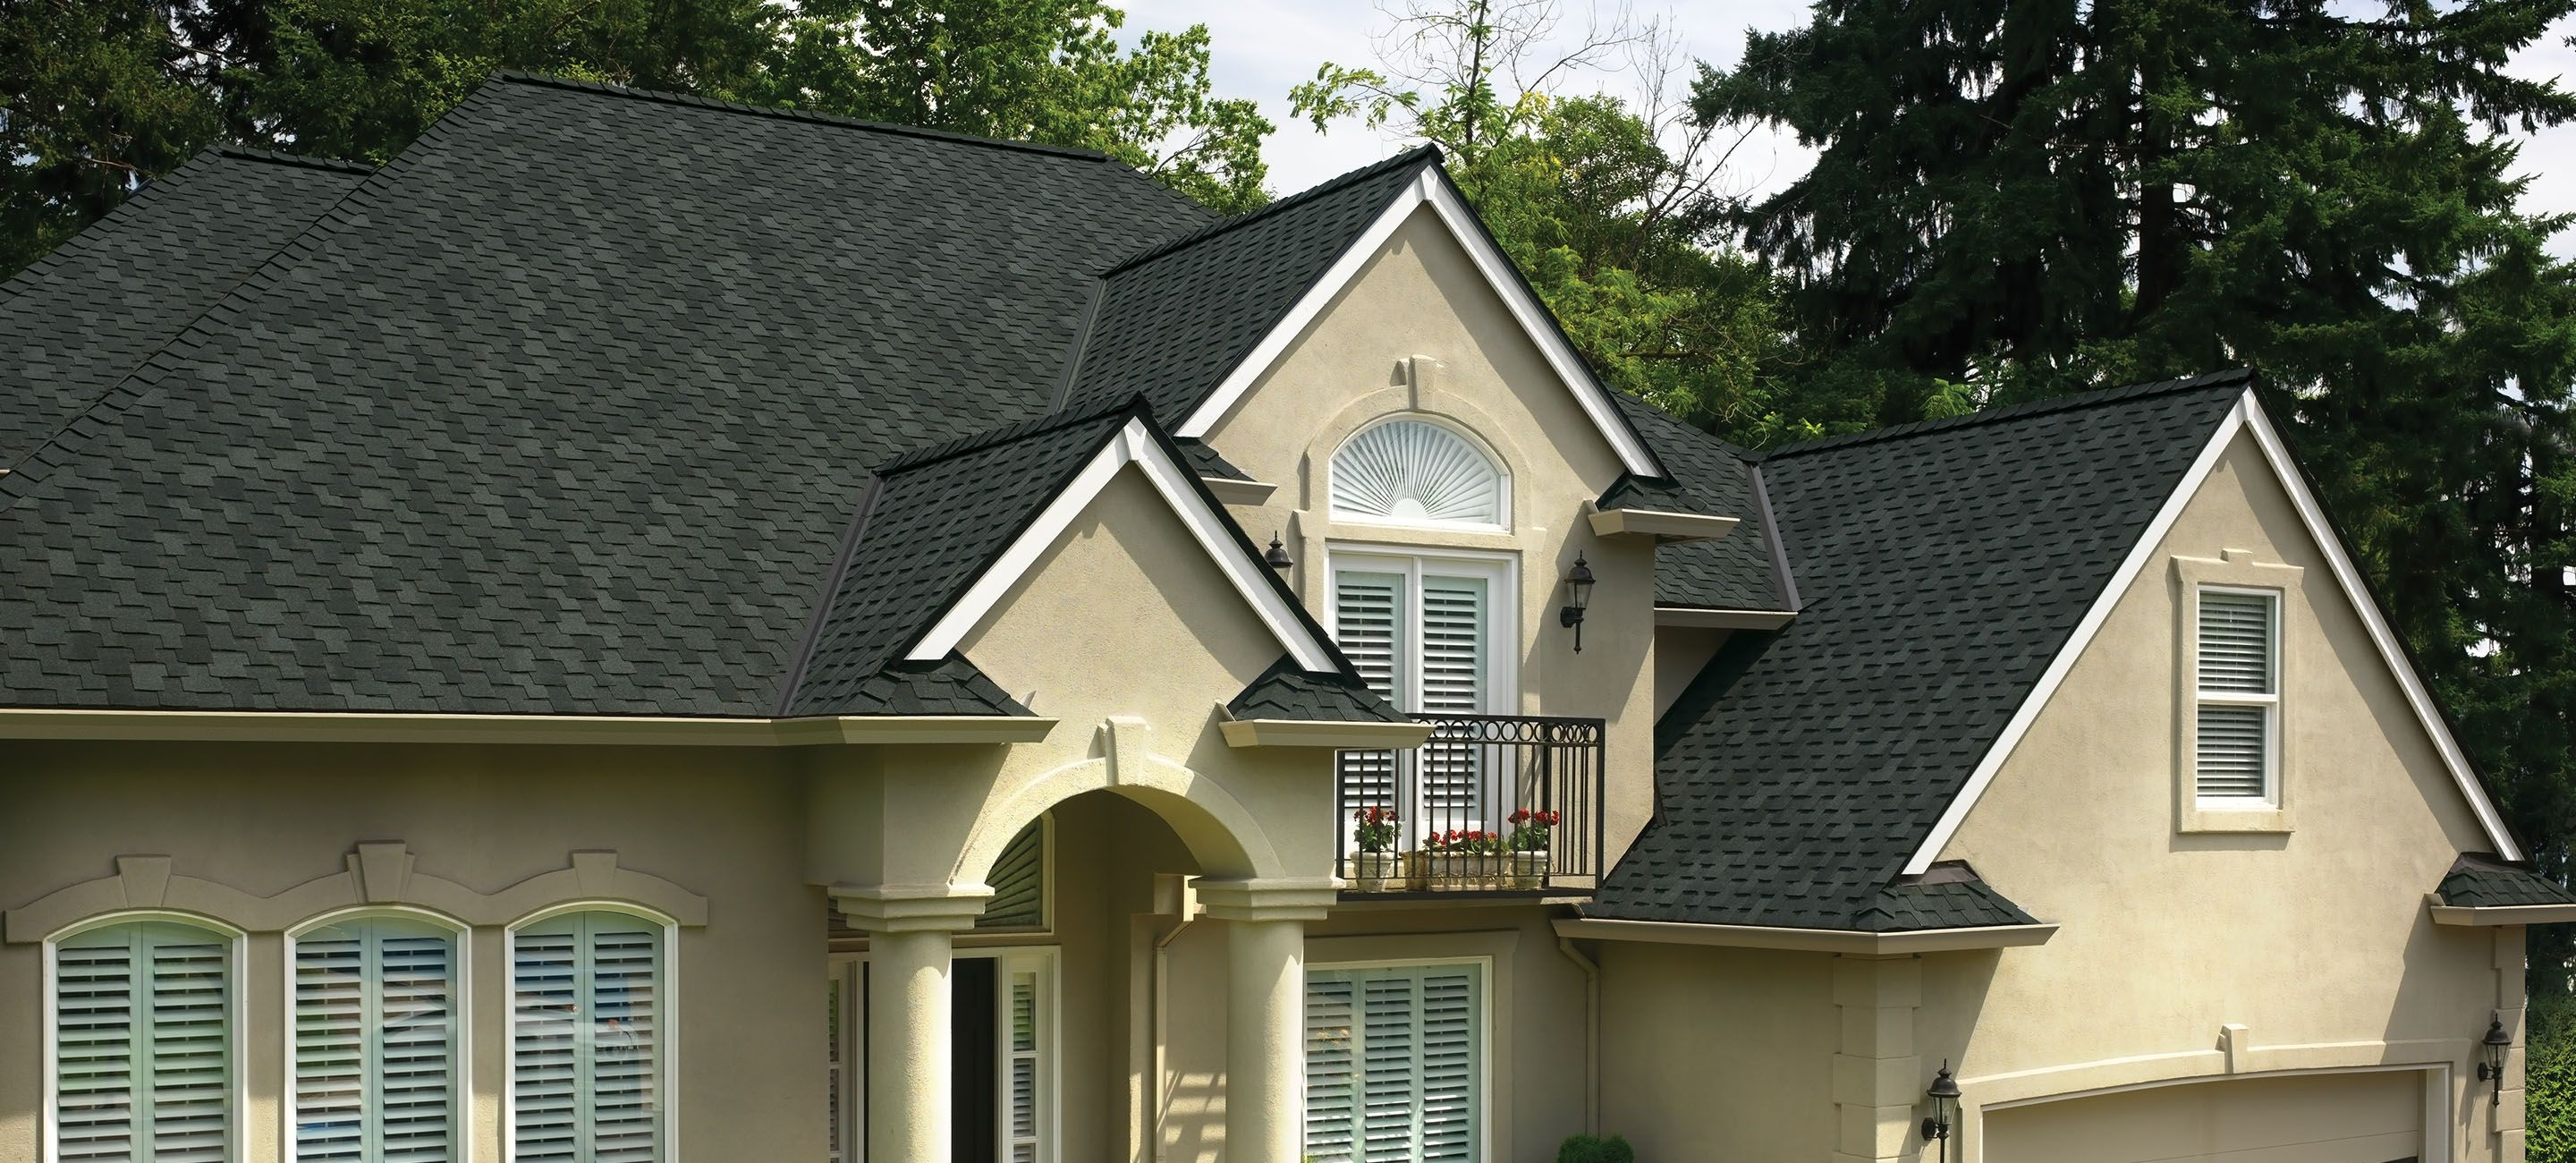 Best Pin By Wedge Roofing On Gaf Camelot Shingle Roof House 640 x 480